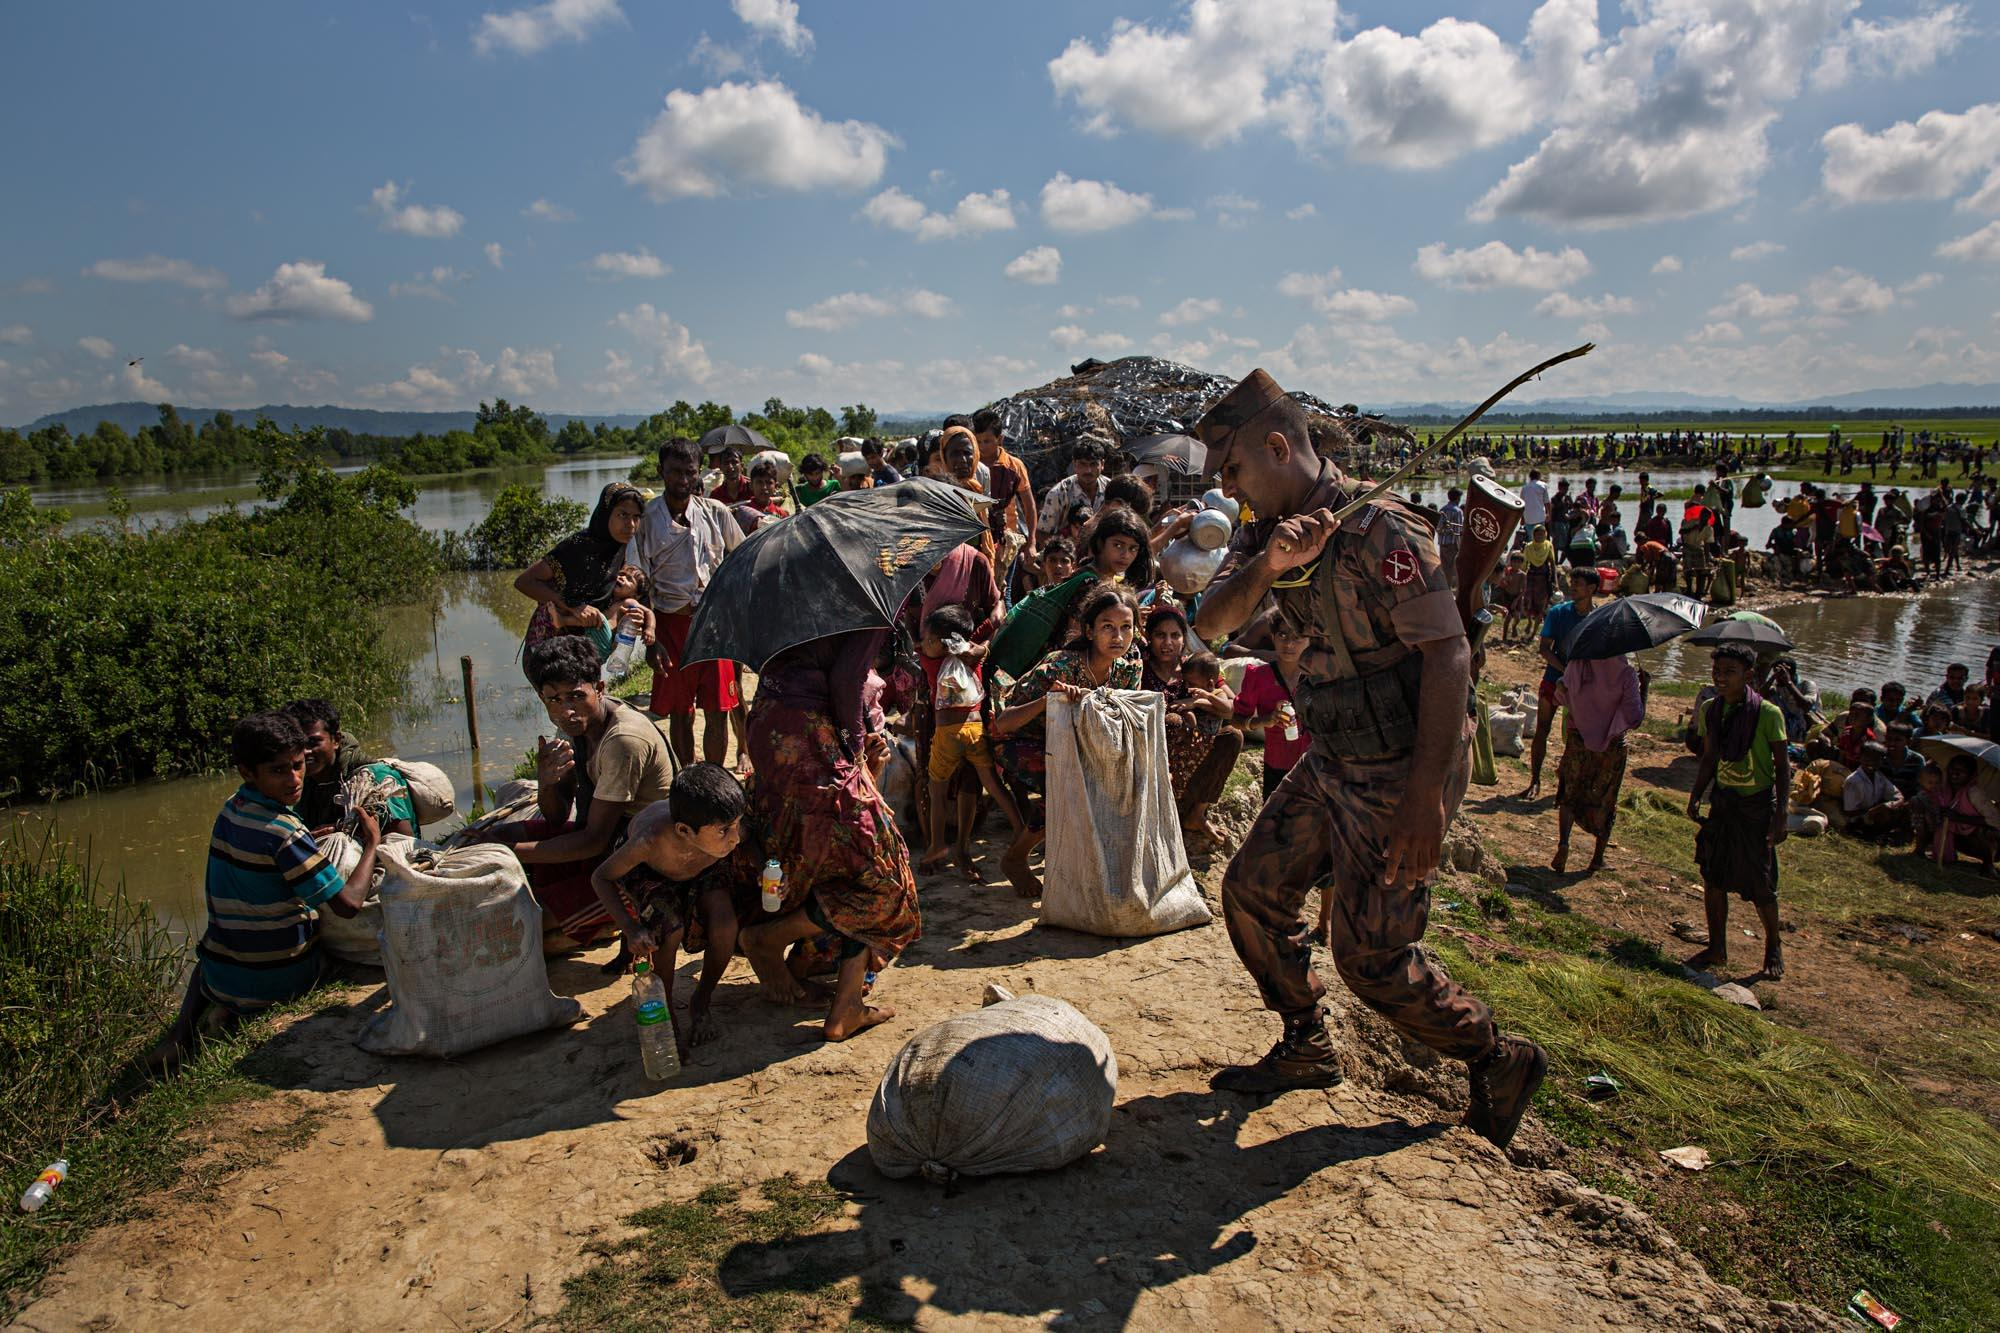 A Boarder Guard Bangladesh (BGB) officer swats at Rohingya refugees with a stick to keep them from going any further in an attempt to control the tide of people coming across the Naf River from Myanmar into Bangladesh.